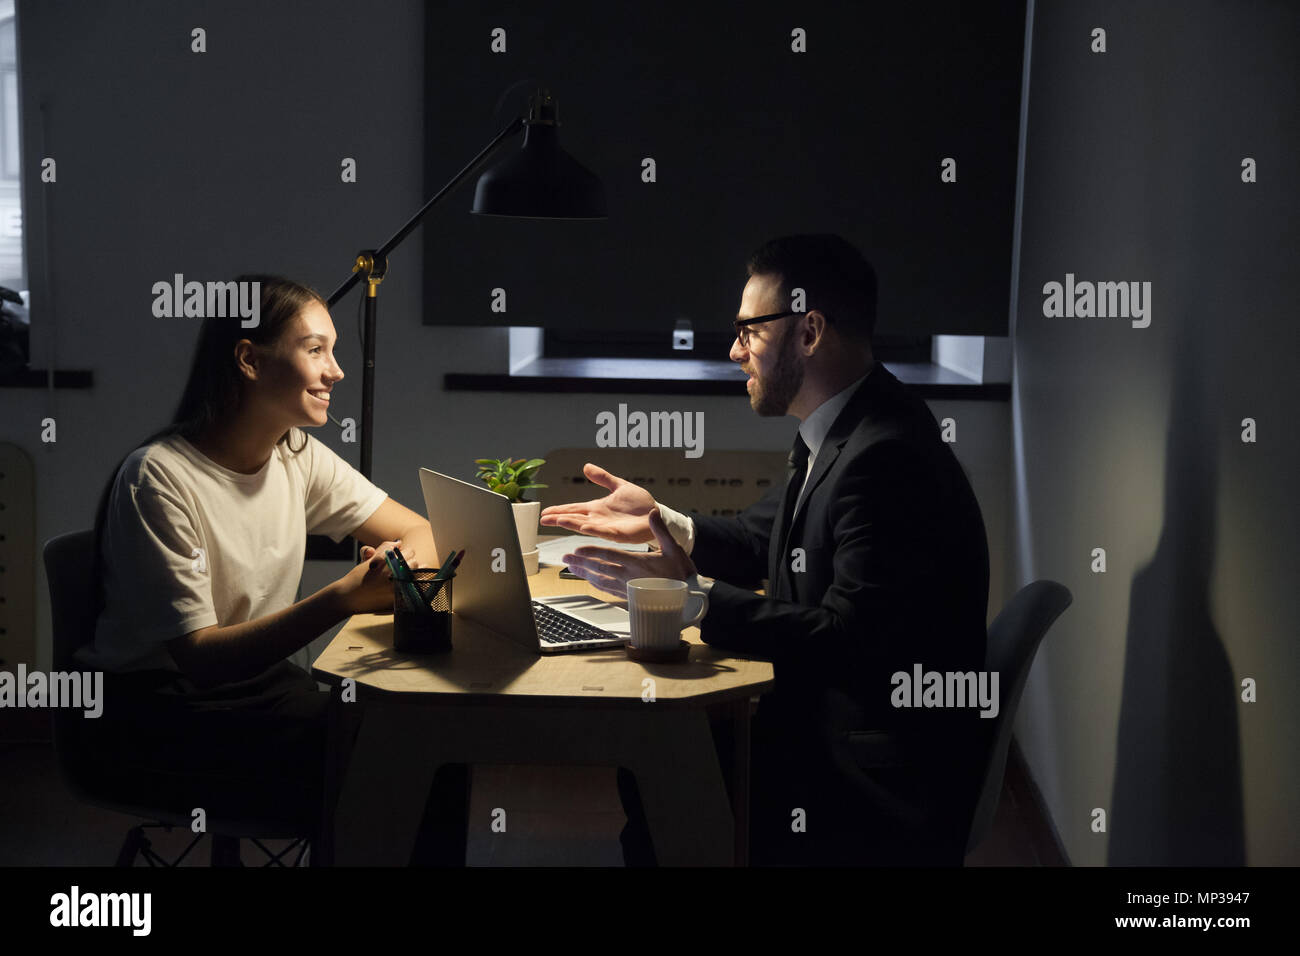 Colleagues working late hours in office discussing business plan - Stock Image